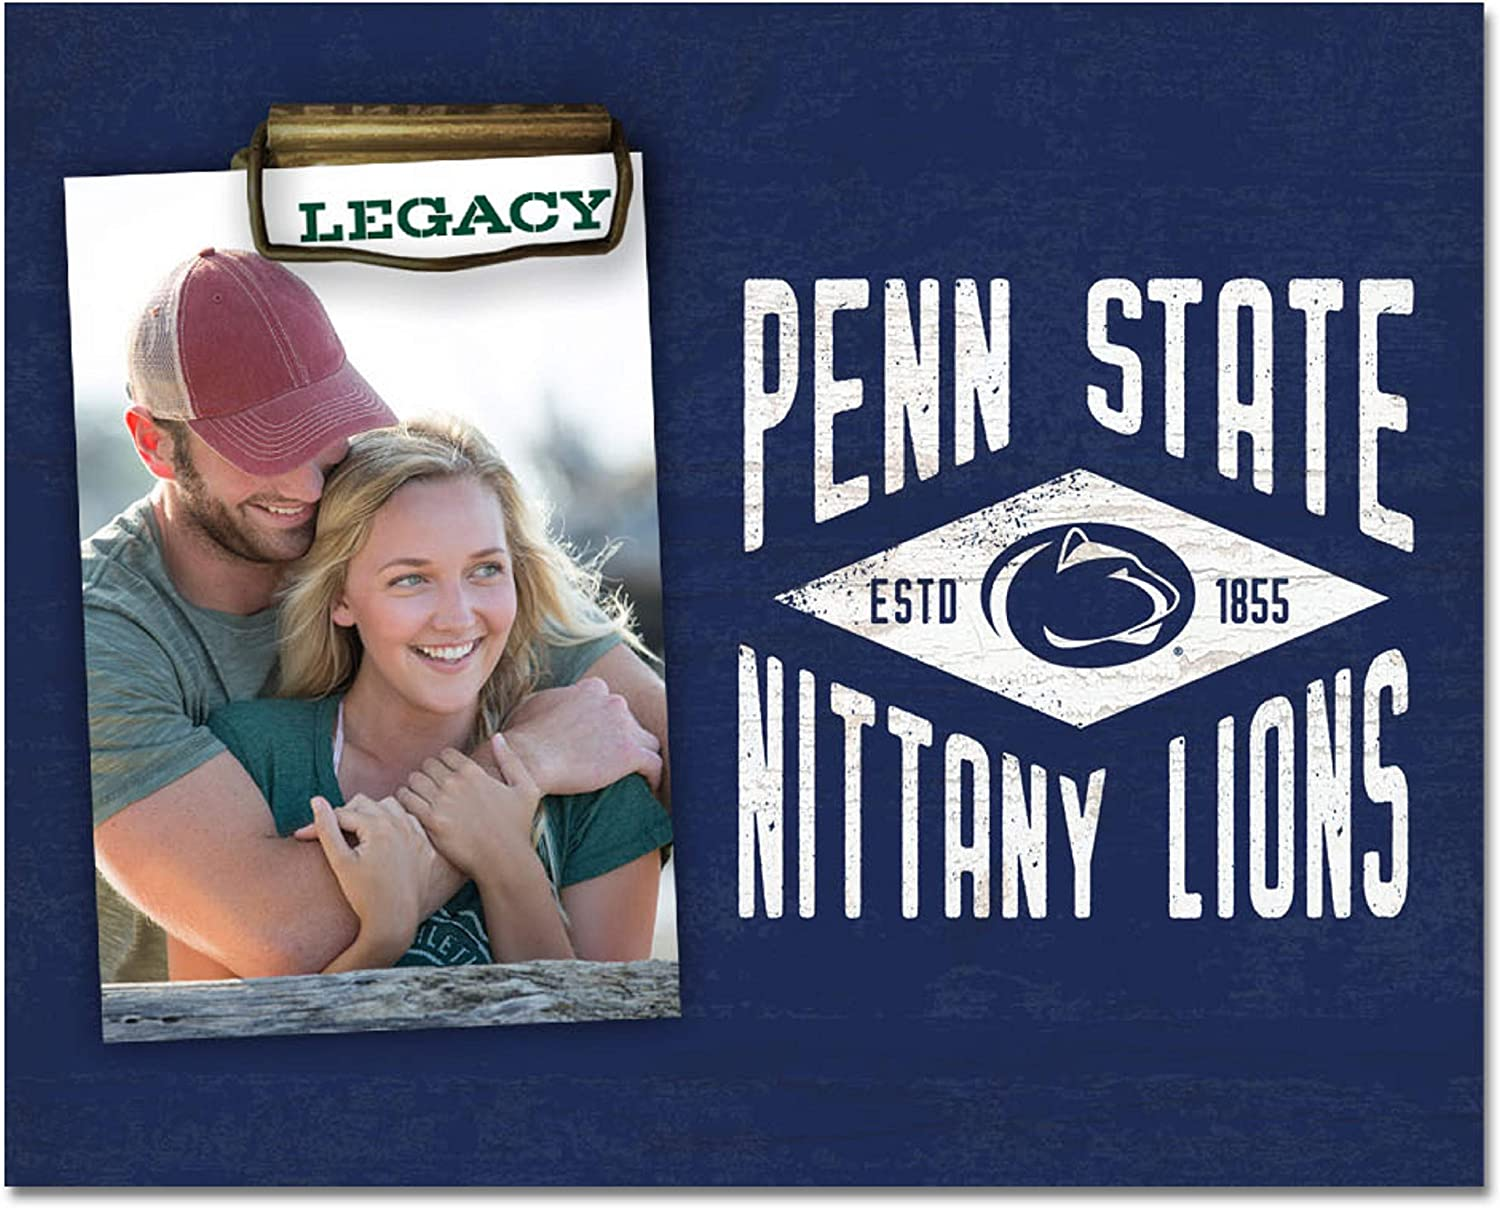 NCAA Legacy Penn State Nittany Lions Memento Photo Holder 8x10, One Size, Wood